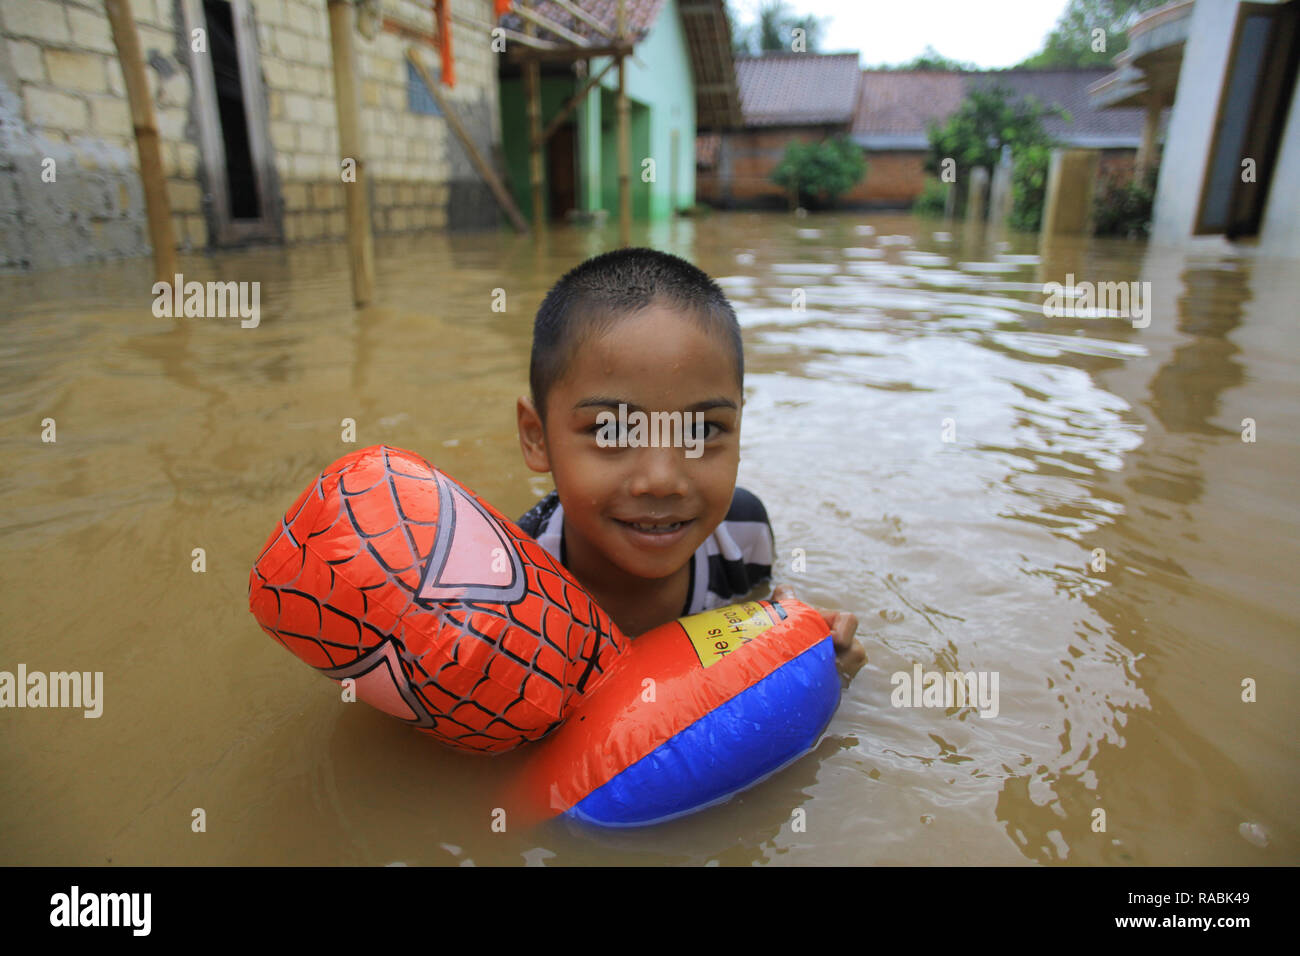 Bogor, West Java, Indonesia. 2nd Jan, 2019. A child seen playing inside the water during a flood. Dozens of residents were evacuated due to the flood disaster that hit village Rancamaya Cikobak RT 03/04, Rancamaya, Bogor City. This flood began to hit dozens of houses in Kampung Rancamaya Cikobak due to the flow of the Cisadane tributary, the Cimakaci River overflowing. Credit: Adriana Adinandra/SOPA Images/ZUMA Wire/Alamy Live News - Stock Image